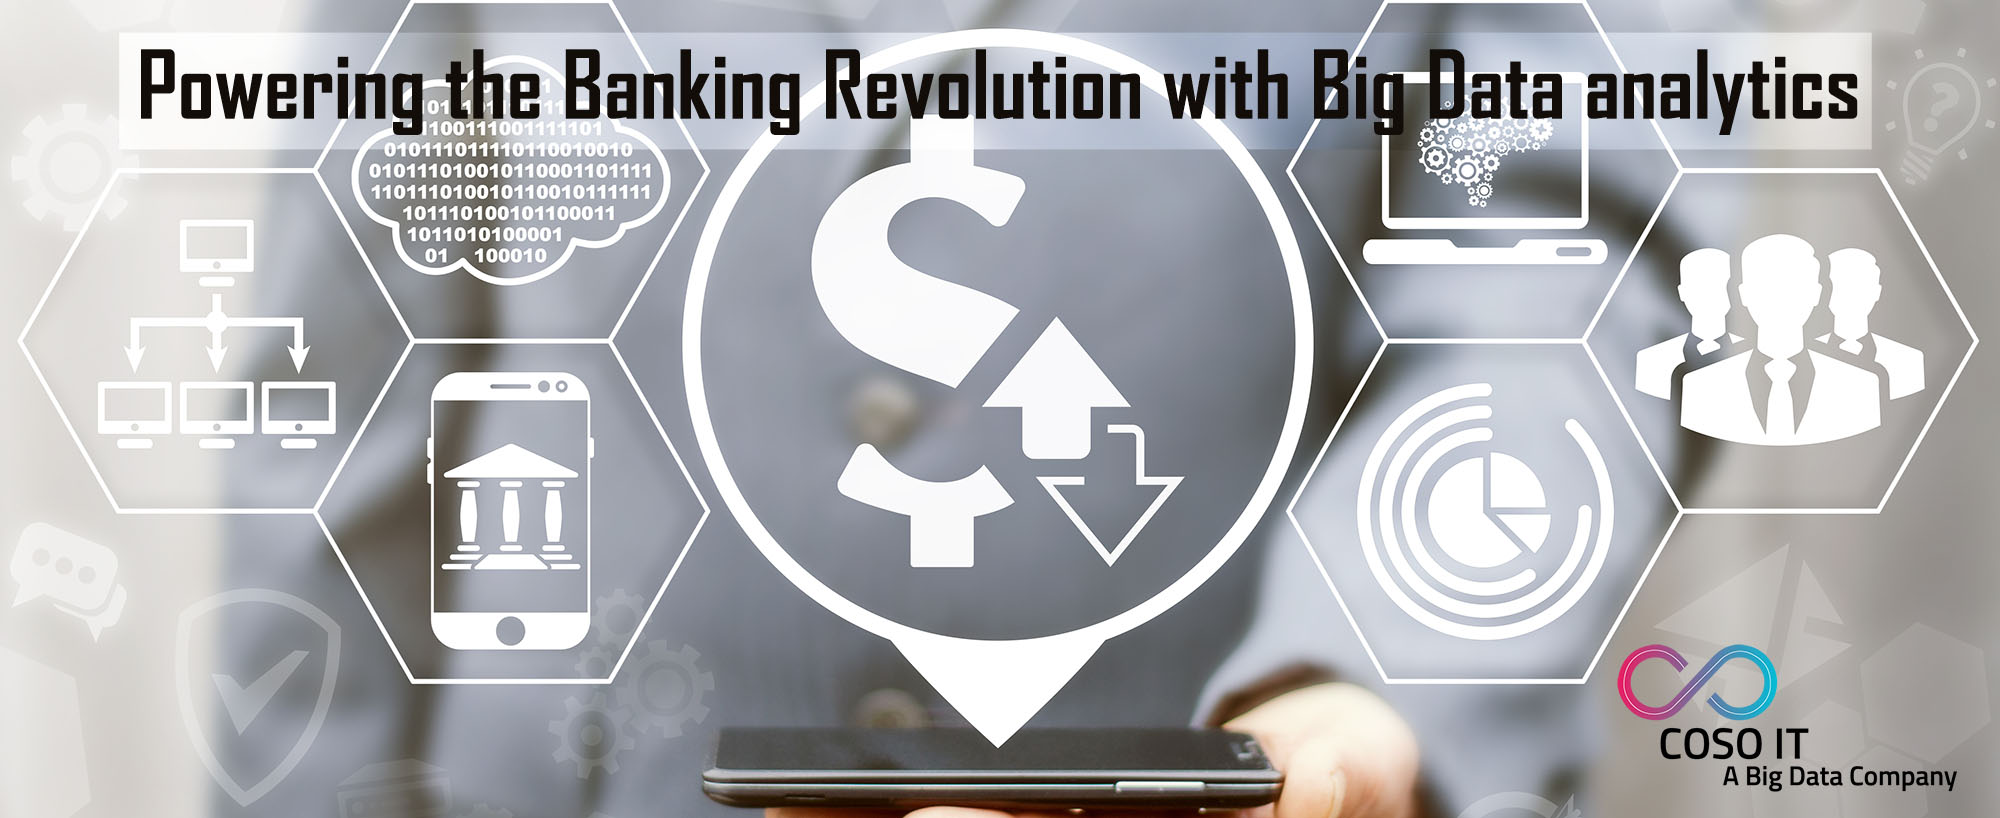 Big Data in Banking Industry - Implementation and